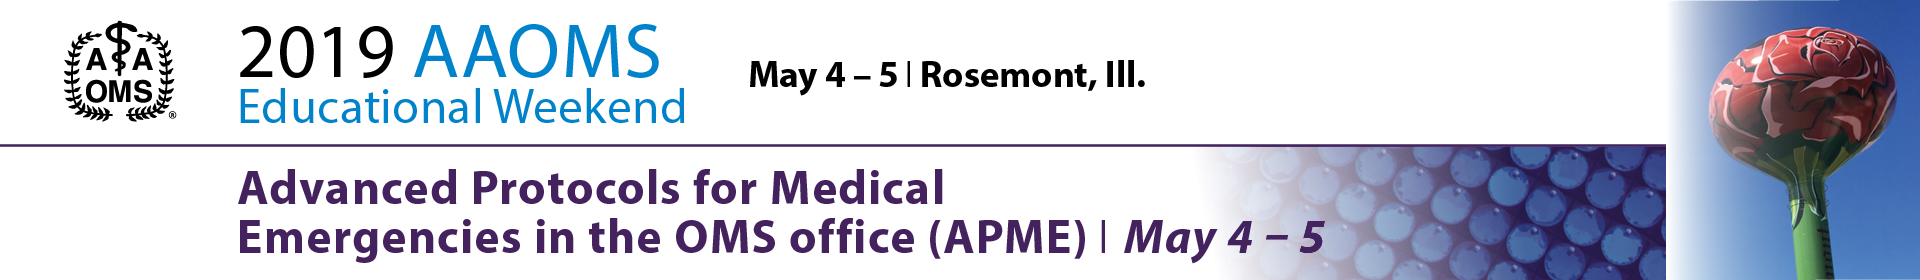 Advanced Protocols for Medical Emergencies in the OMS office